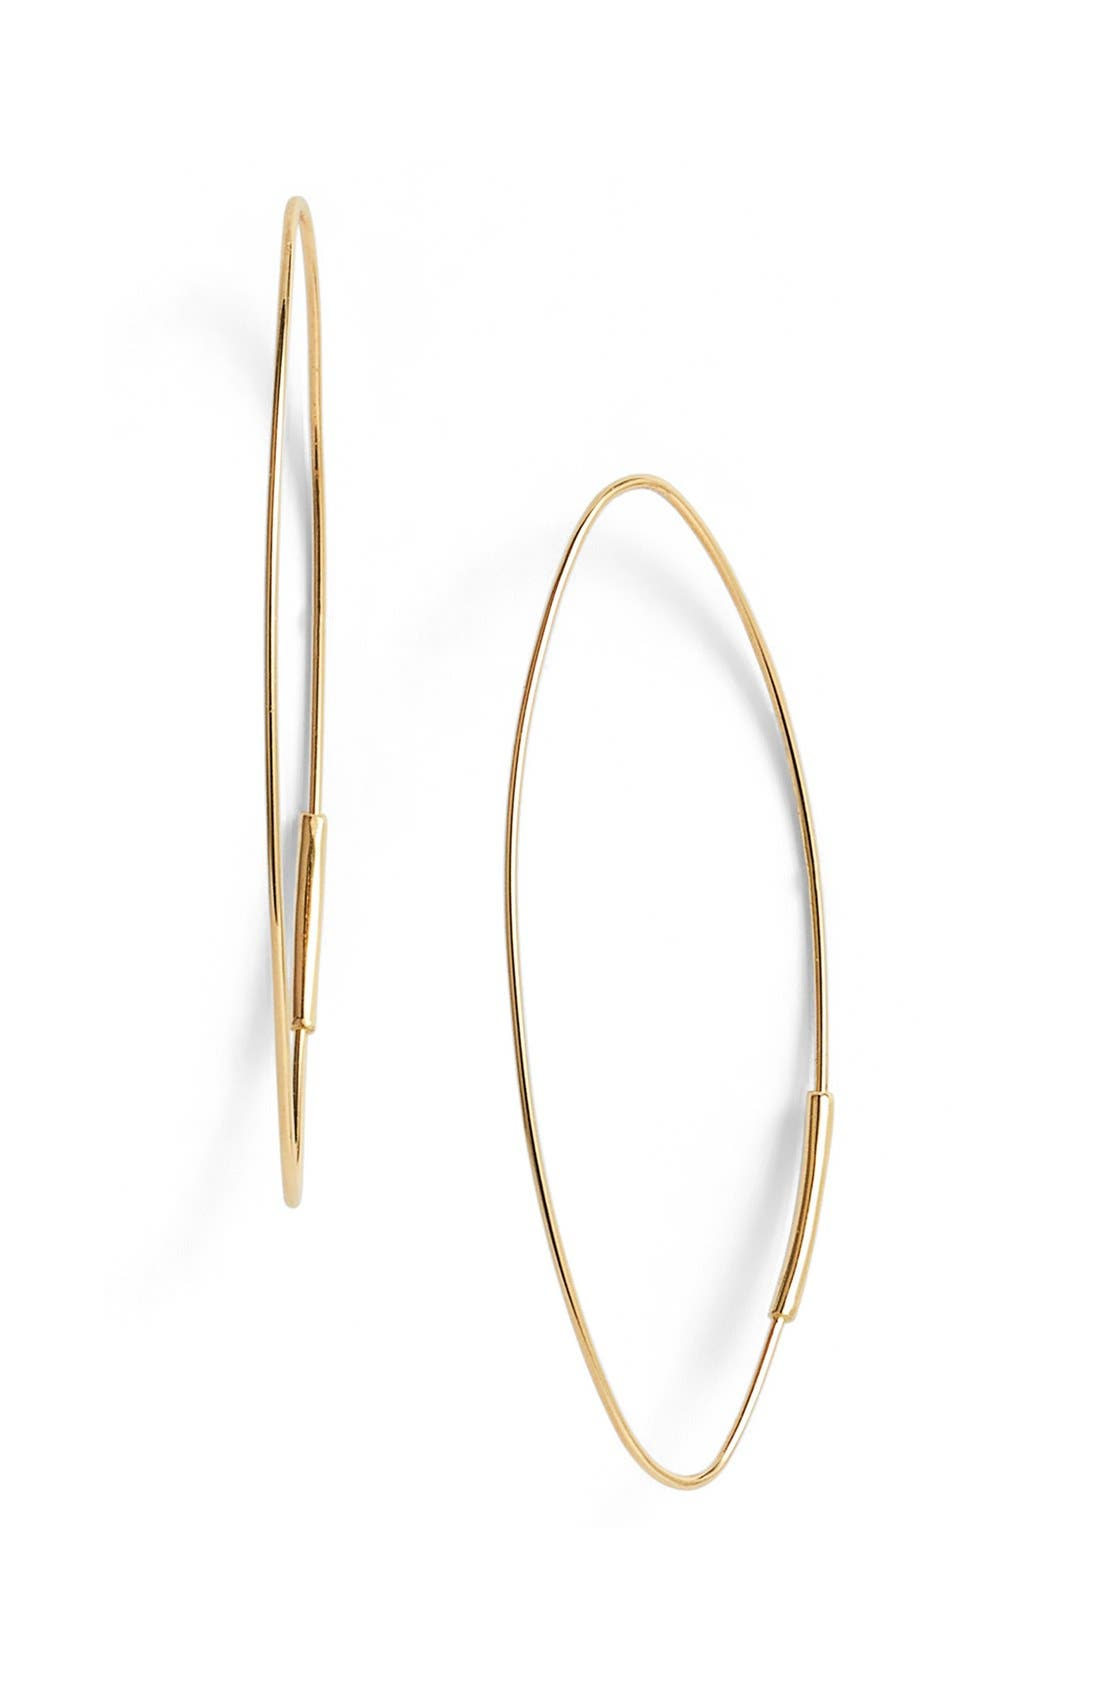 Main Image - Lana Jewelry 'Magic' Small Oval Hoop Earrings